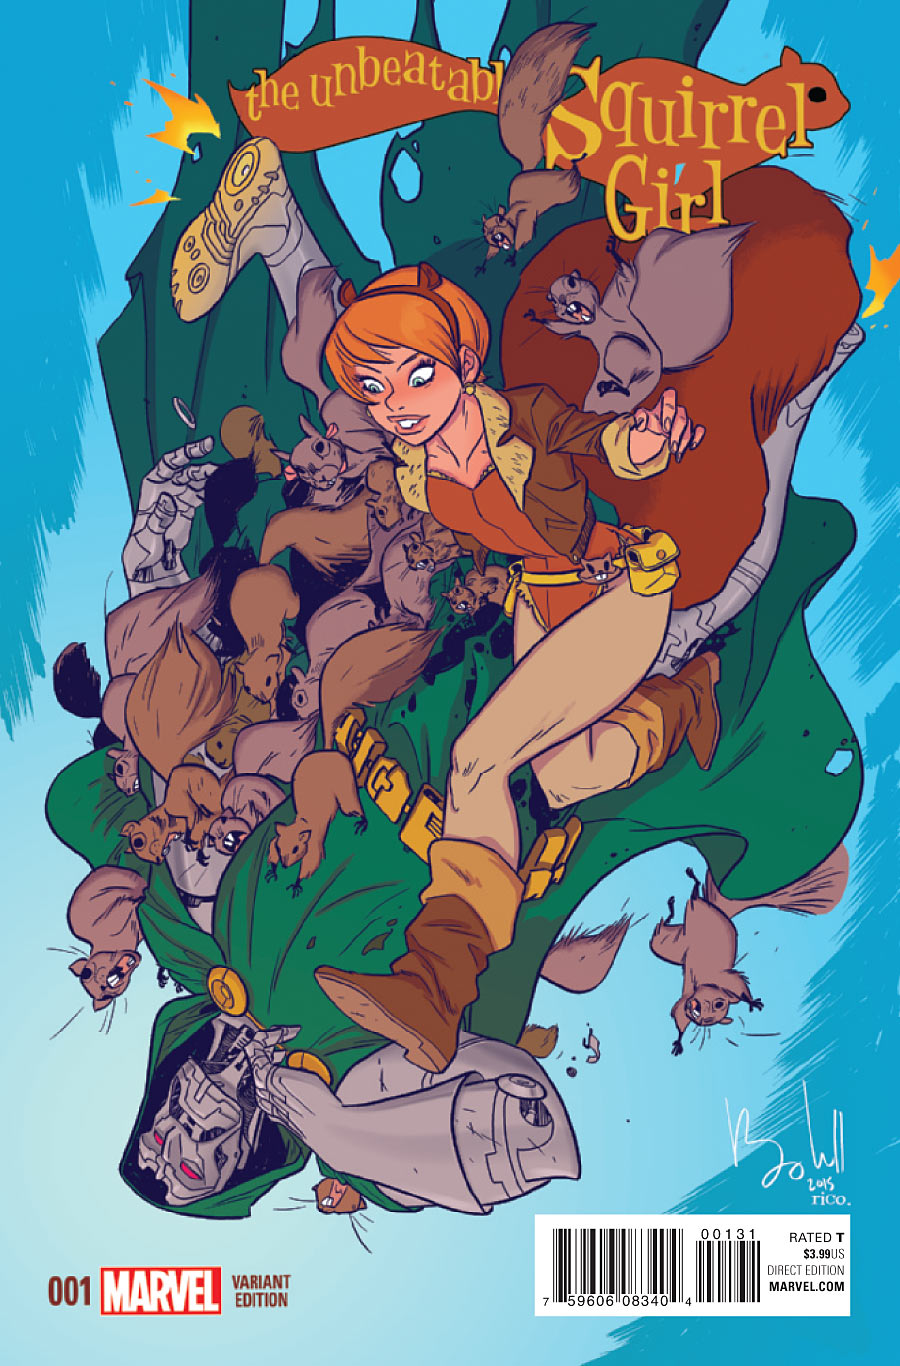 Комикс ревю: The Unbeatable Squirrel Girl #2-5 Vol. 2